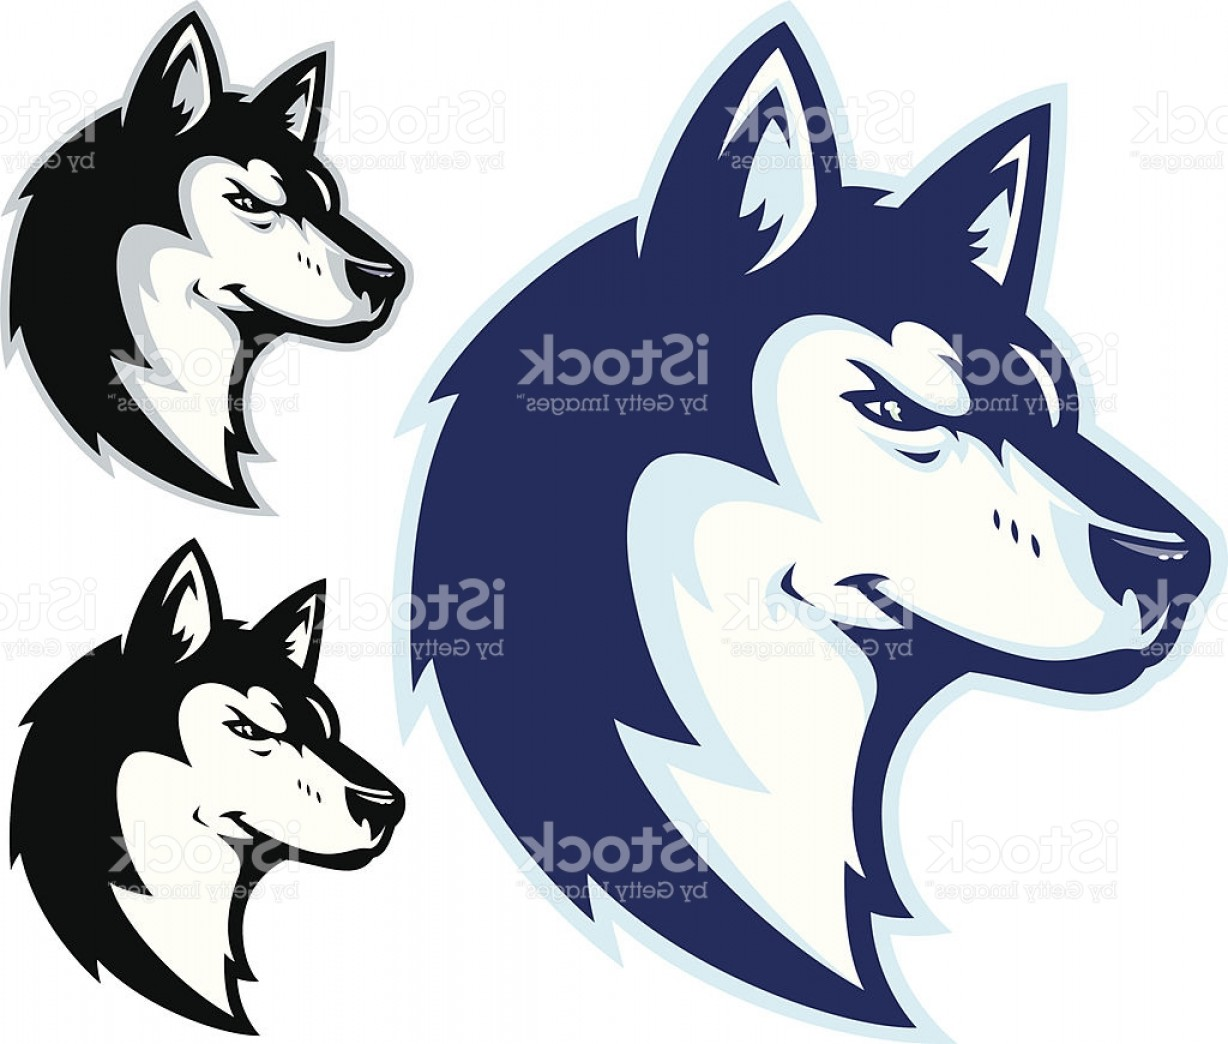 Dog Mascot Vector: Husky Power Ii Mascot Gm